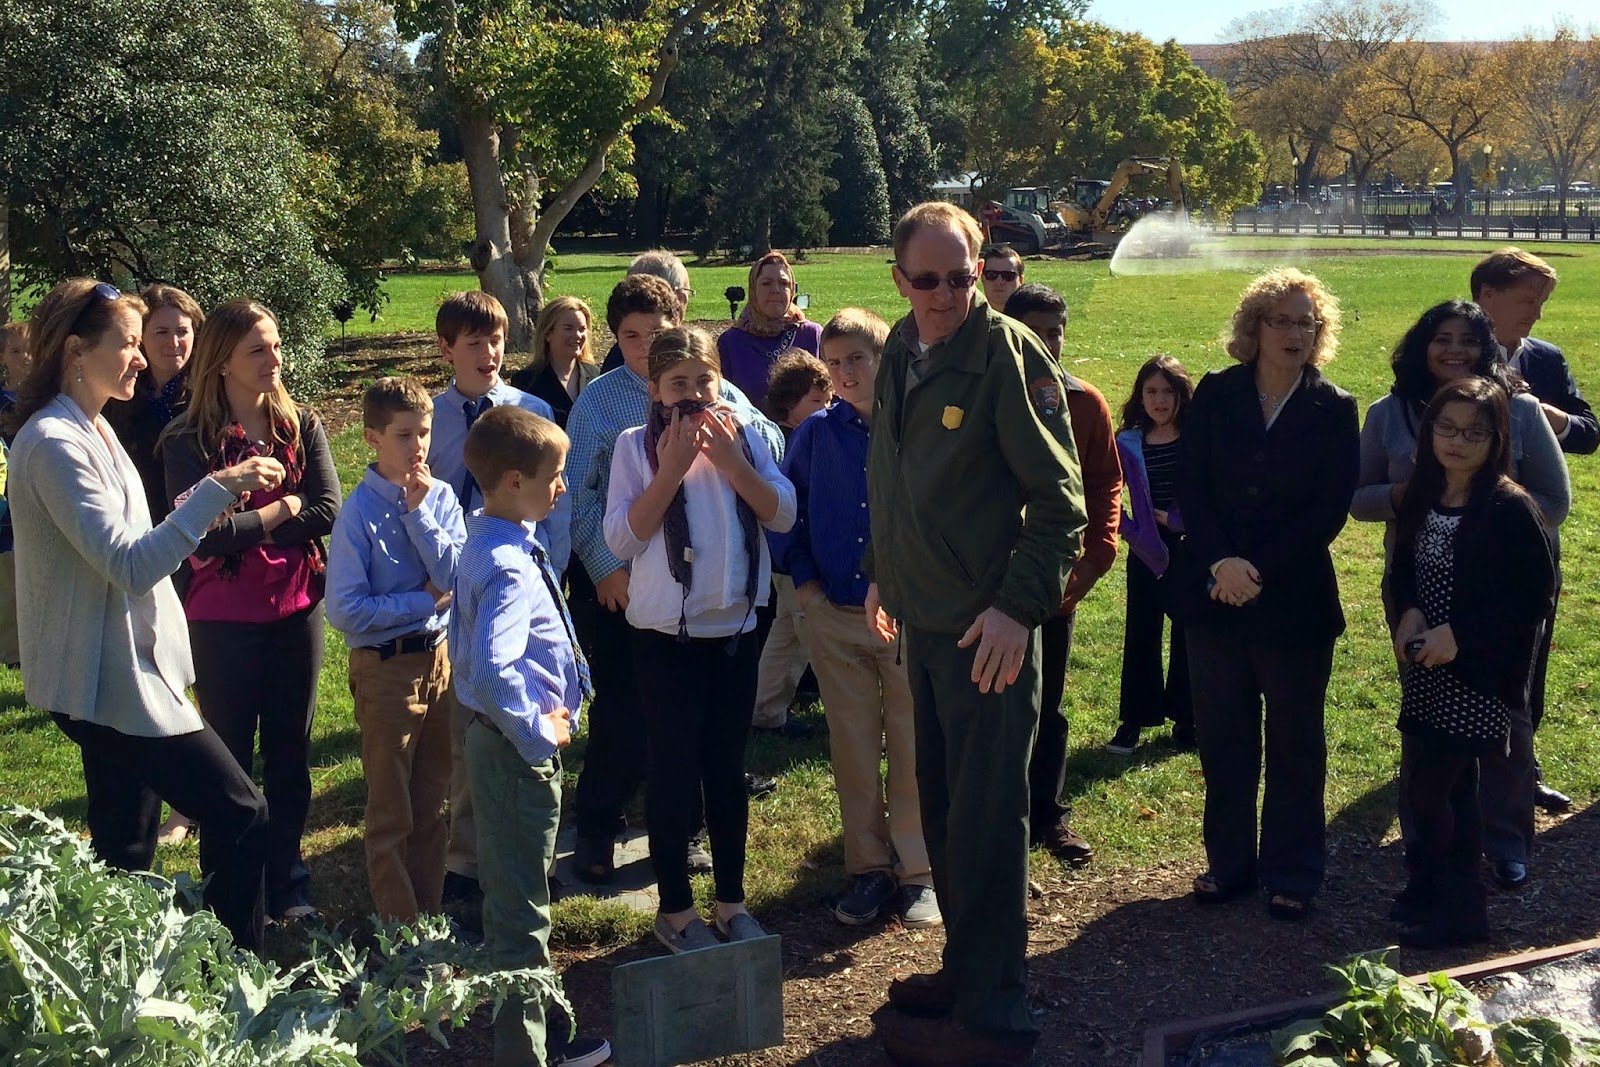 Hockomock YMCA Healthy Futures group visiting the White House garden